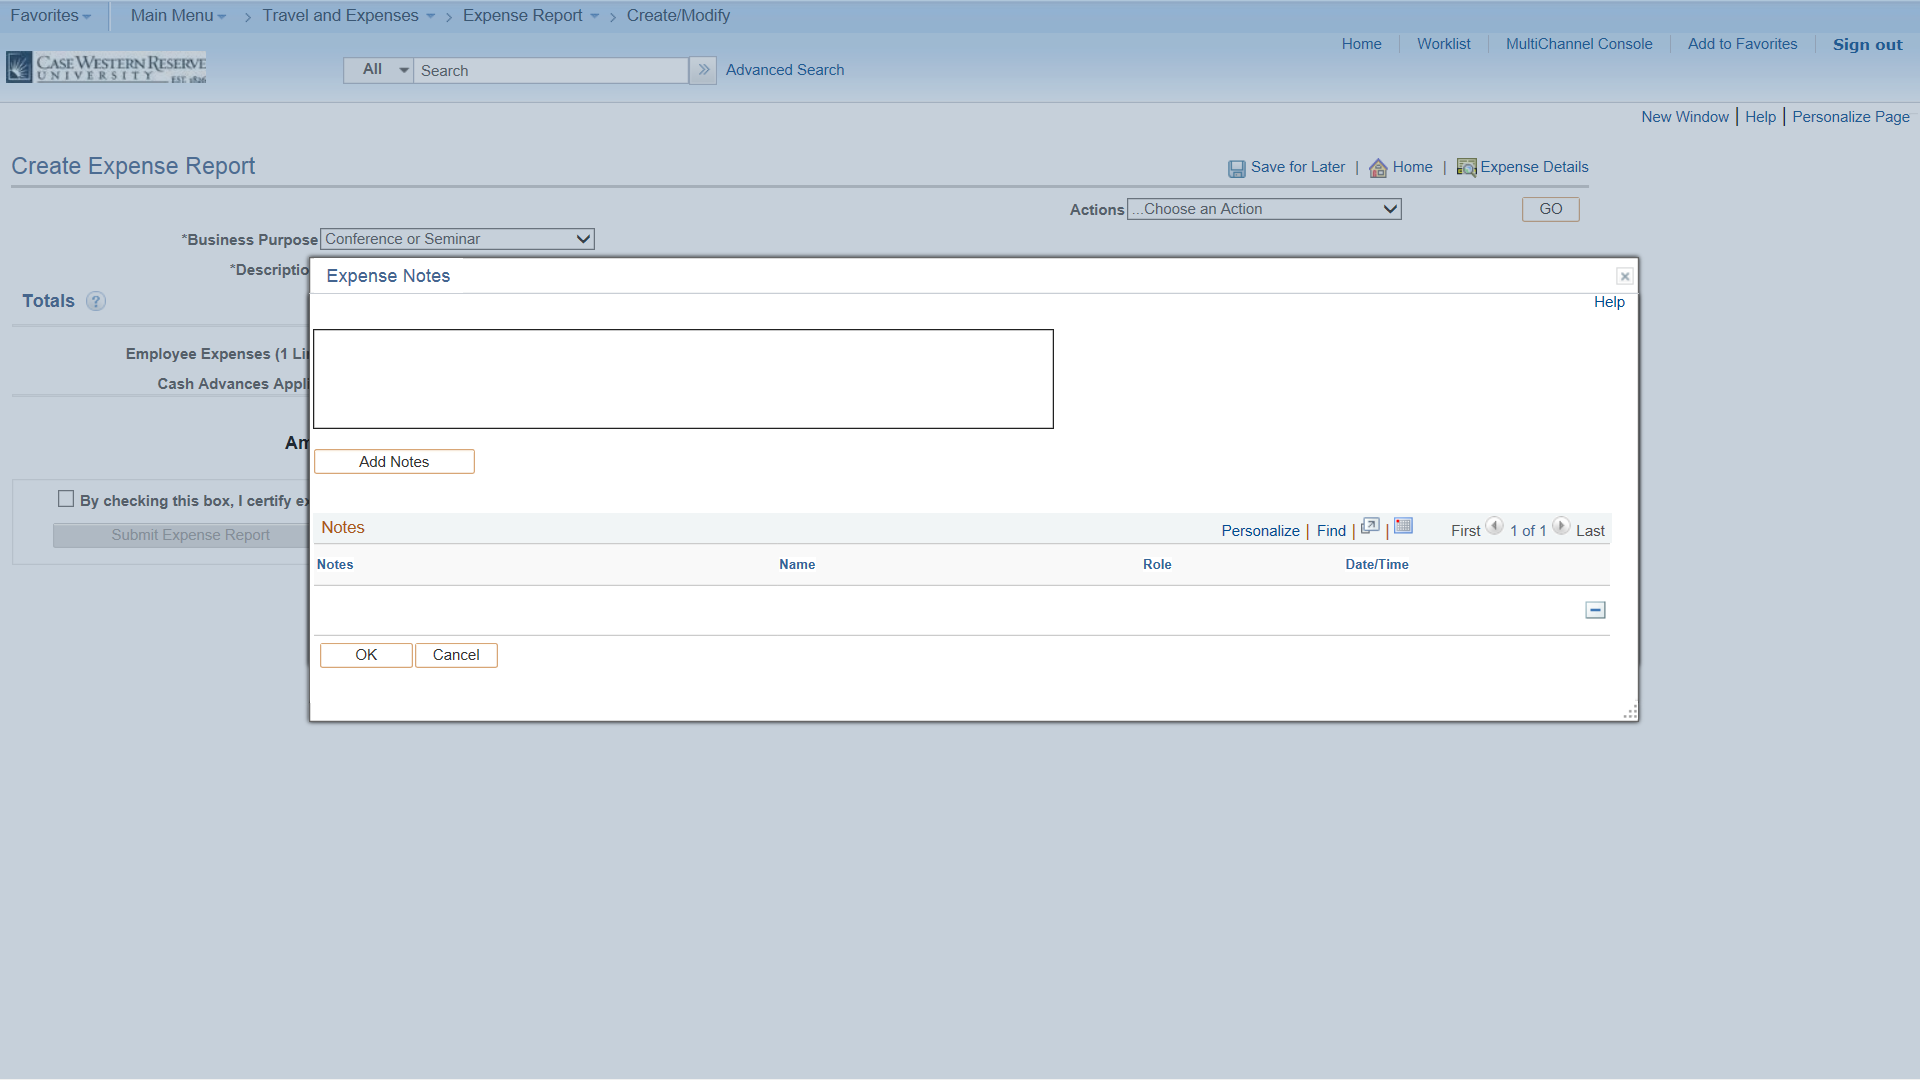 PeopleSoft Financials screen shot displaying a text box where comments or notes may be added.